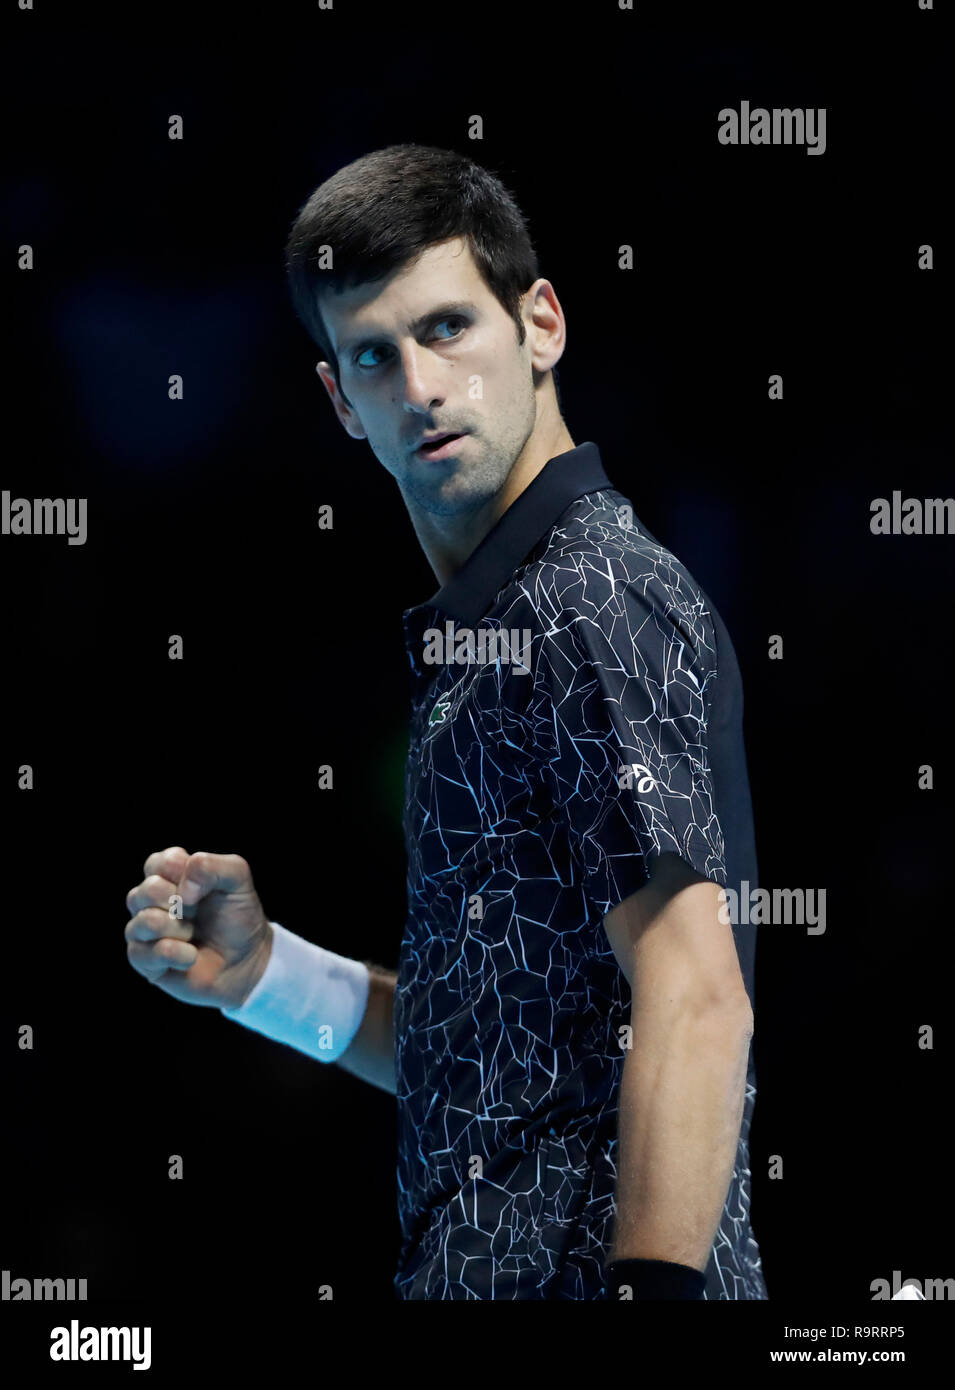 (181228) -- BEIJING, Dec. 28, 2018 (Xinhua) -- File photo taken on Nov. 17, 2018 shows Novak Djokovic of Serbia reacts during the singles semifinal match against Kevin Anderson of South Africa during the 2018 Nitto ATP World Tour Finals in London, Britain. After returning from injuries, the 31-year-old Djokovic won two Grand Slams at the Australia Open and the US Open and his first Cincinnati Masters championship, completing a career golden masters by bagging all nine ATP 1000s Masters trophies. He finished the season as ATP world No. 1, becoming the first player to return to glory after finis - Stock Image